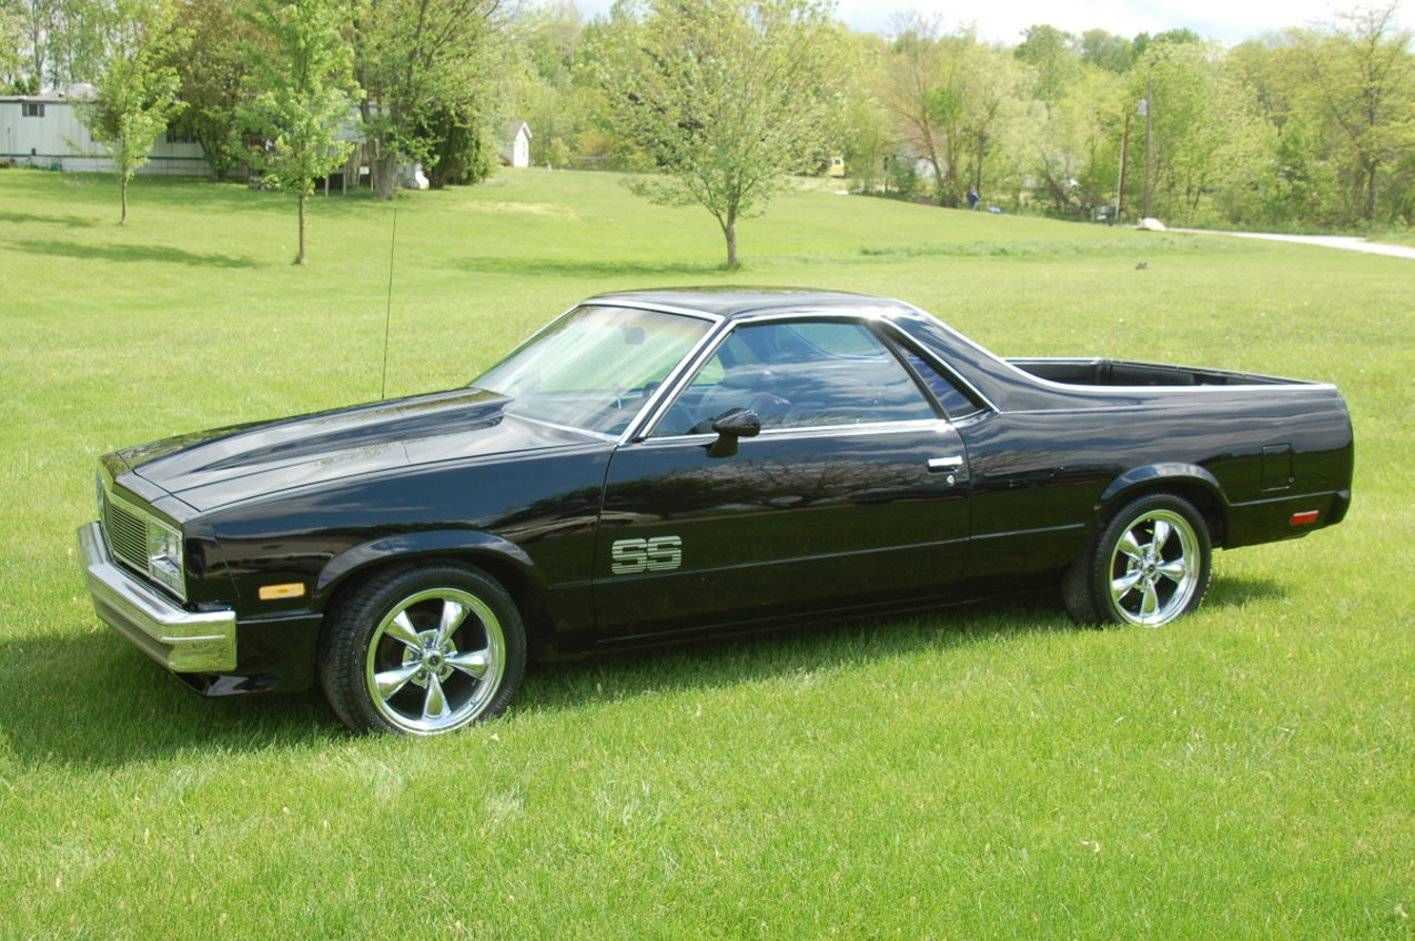 Chevy Monte Carlo Project Car For Sale